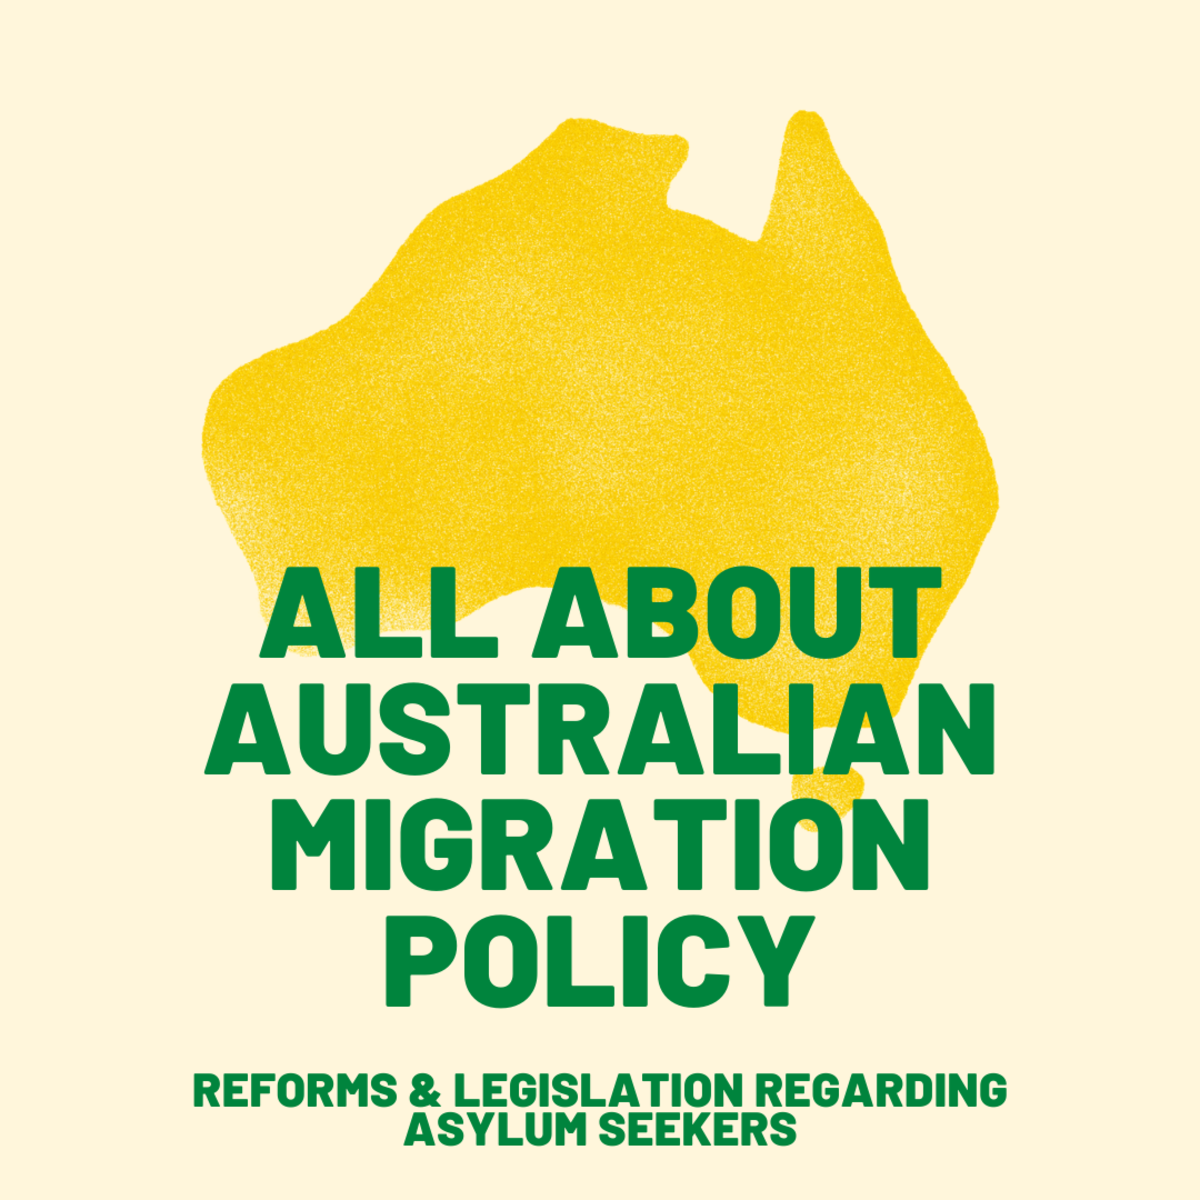 Australian Migration Policy: What Are We Doing About Asylum Seekers?